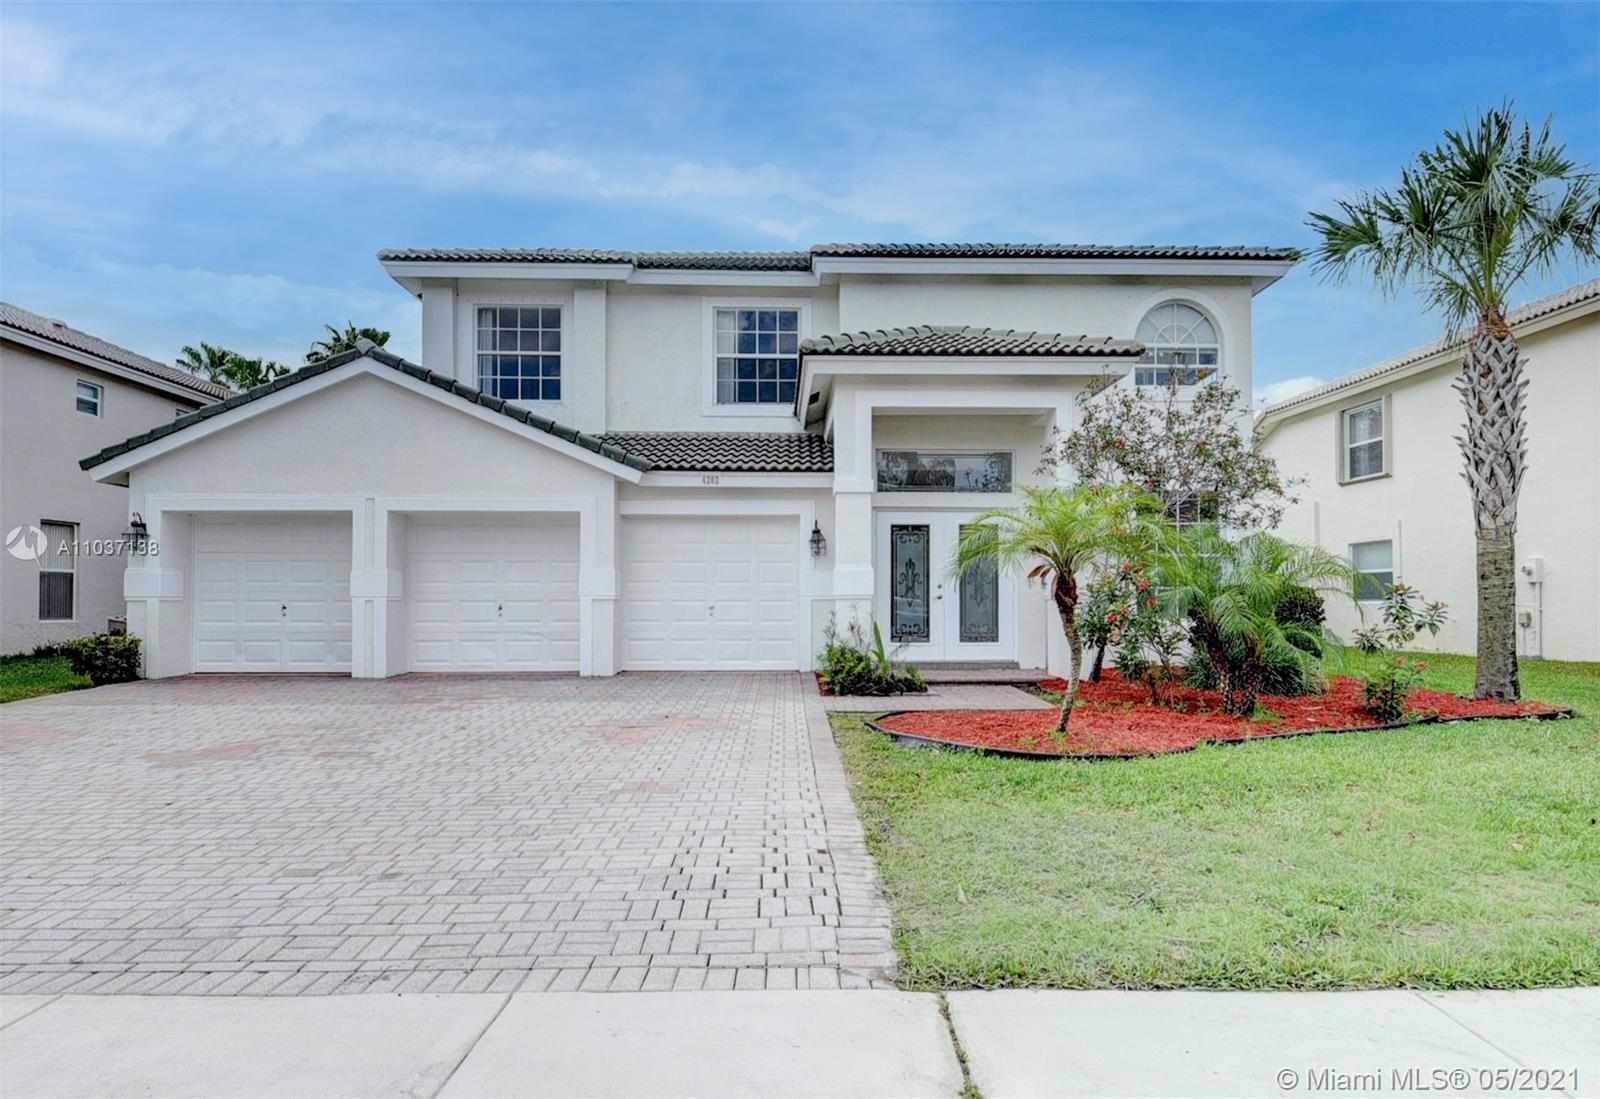 GORGEOUS 6 BEDROOM, 4 BATHROOMS 3 CAR GARAGE , GORGEOUS SINGLE FAMILY HOME, 2 STORIES, NEW FLOORING